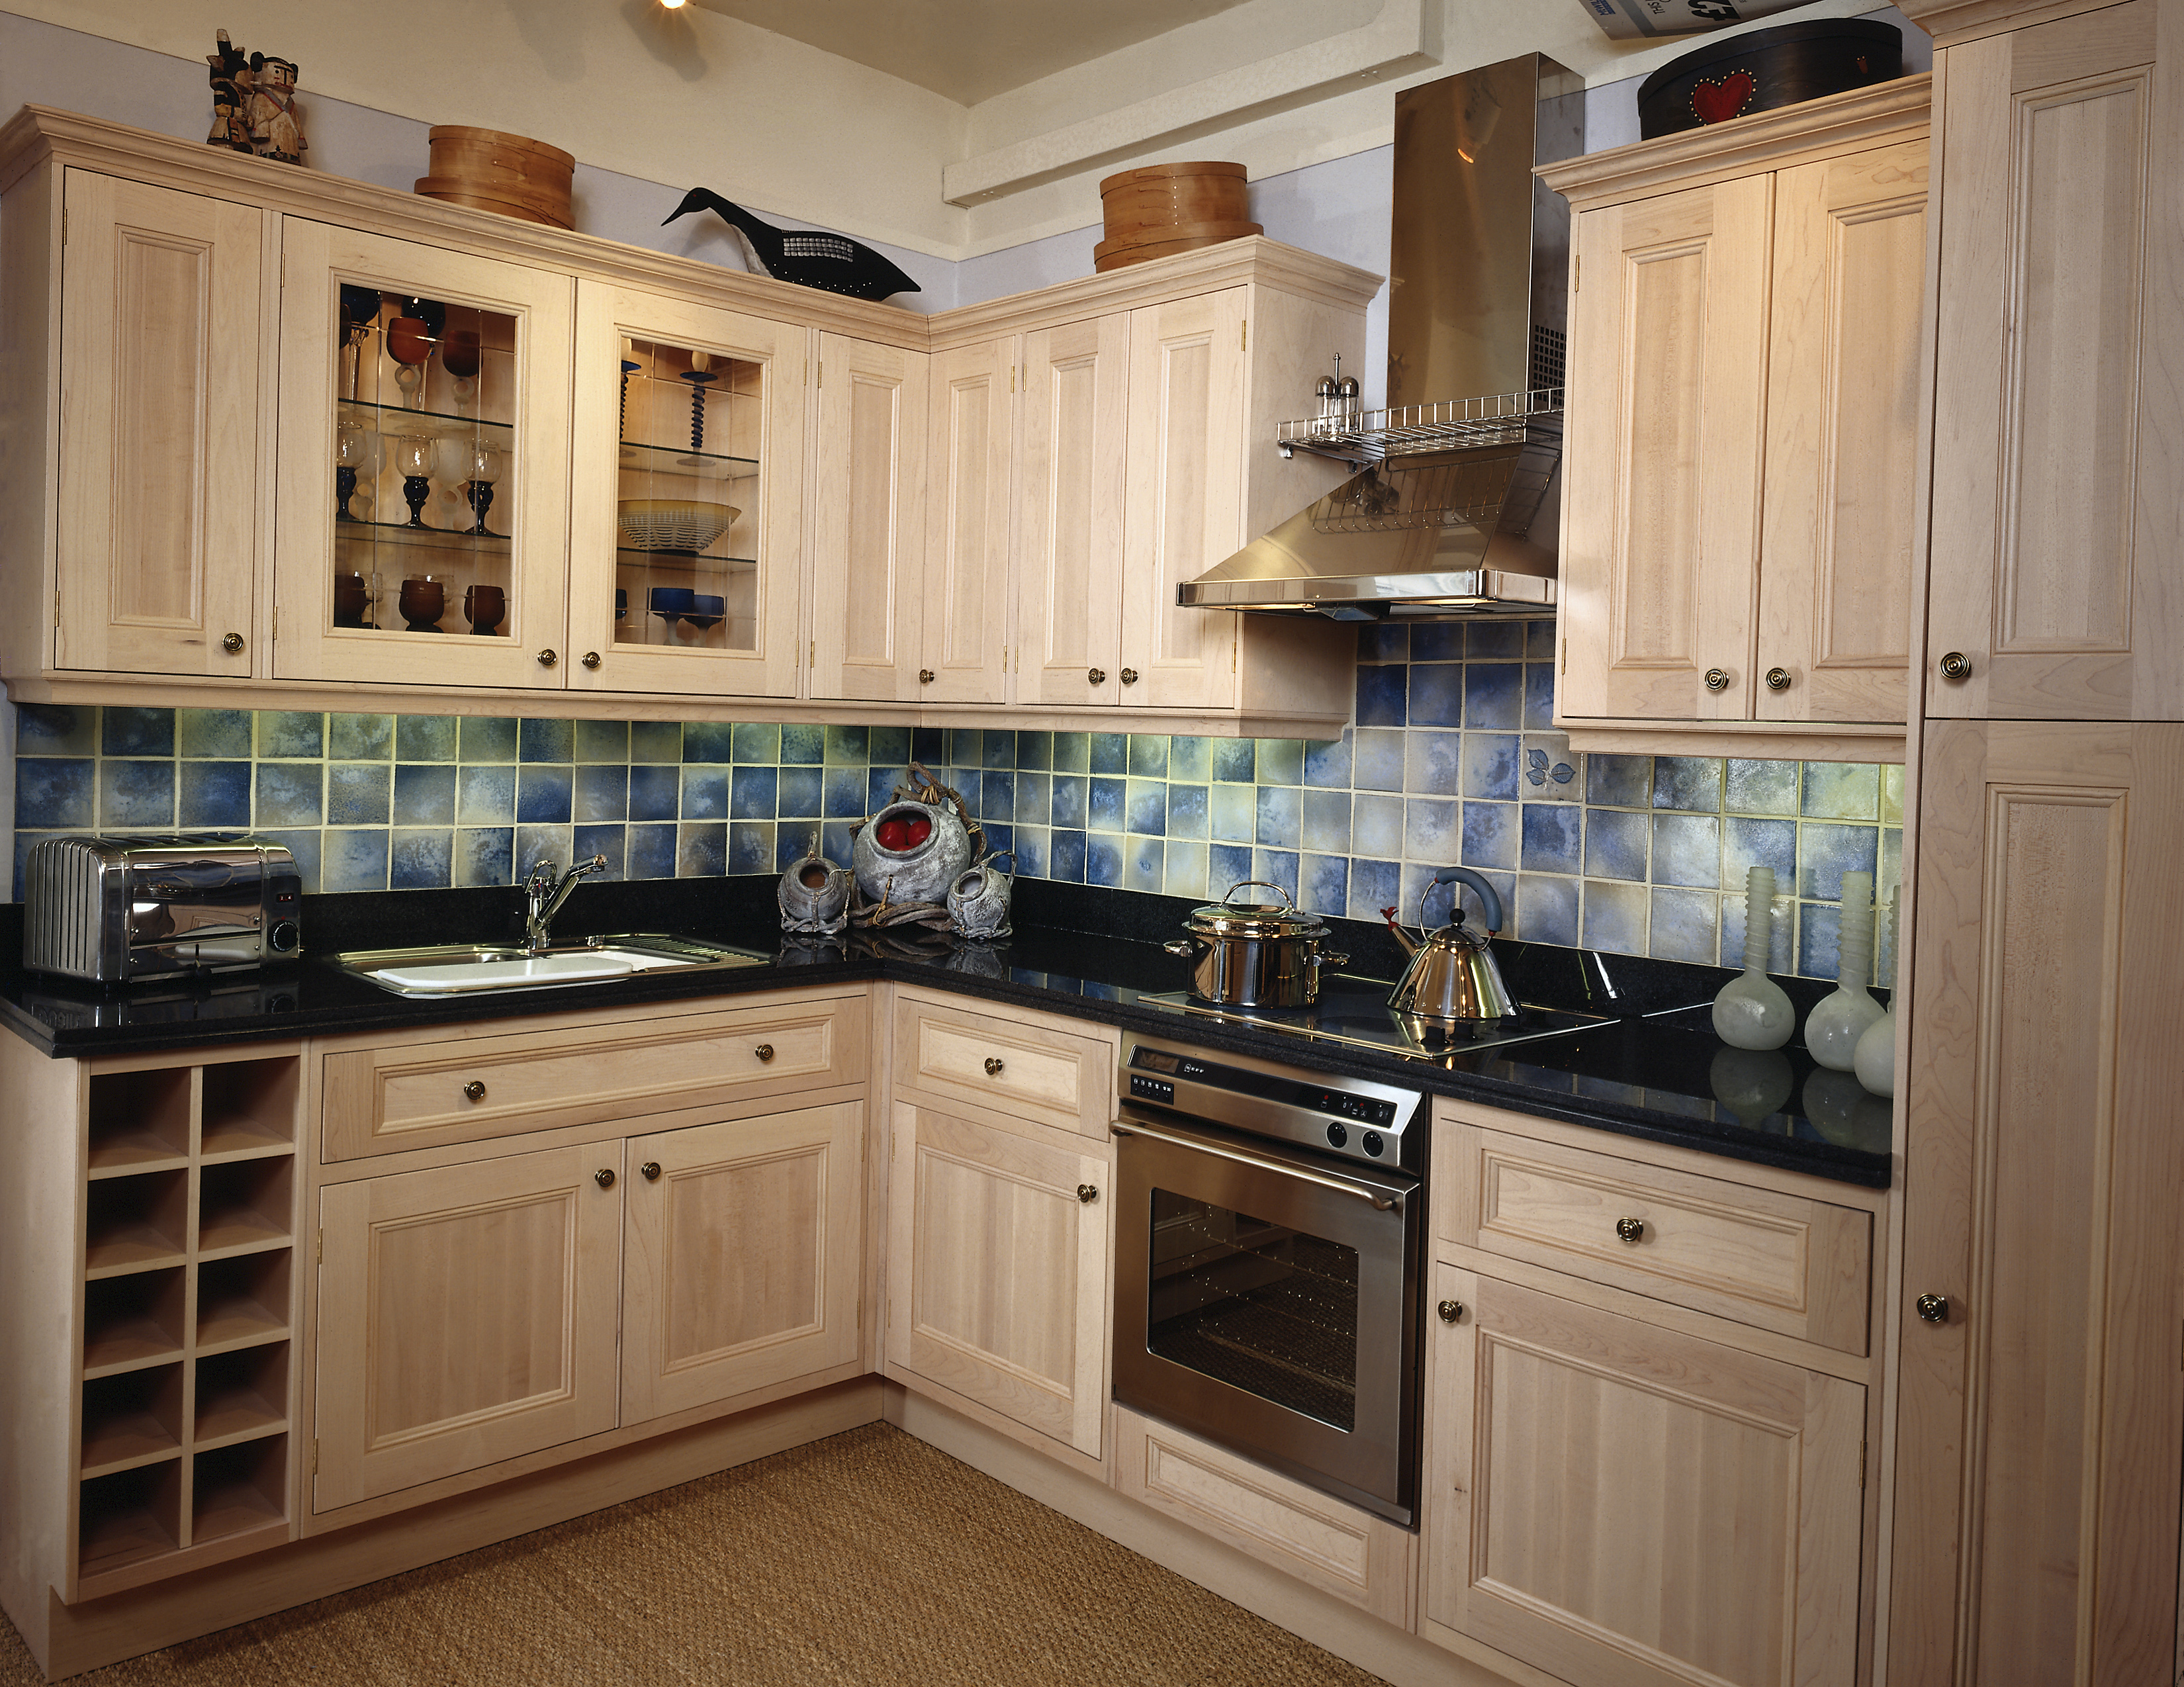 How To Get Rid Of The Smell In Musty Wooden Kitchen Drawers